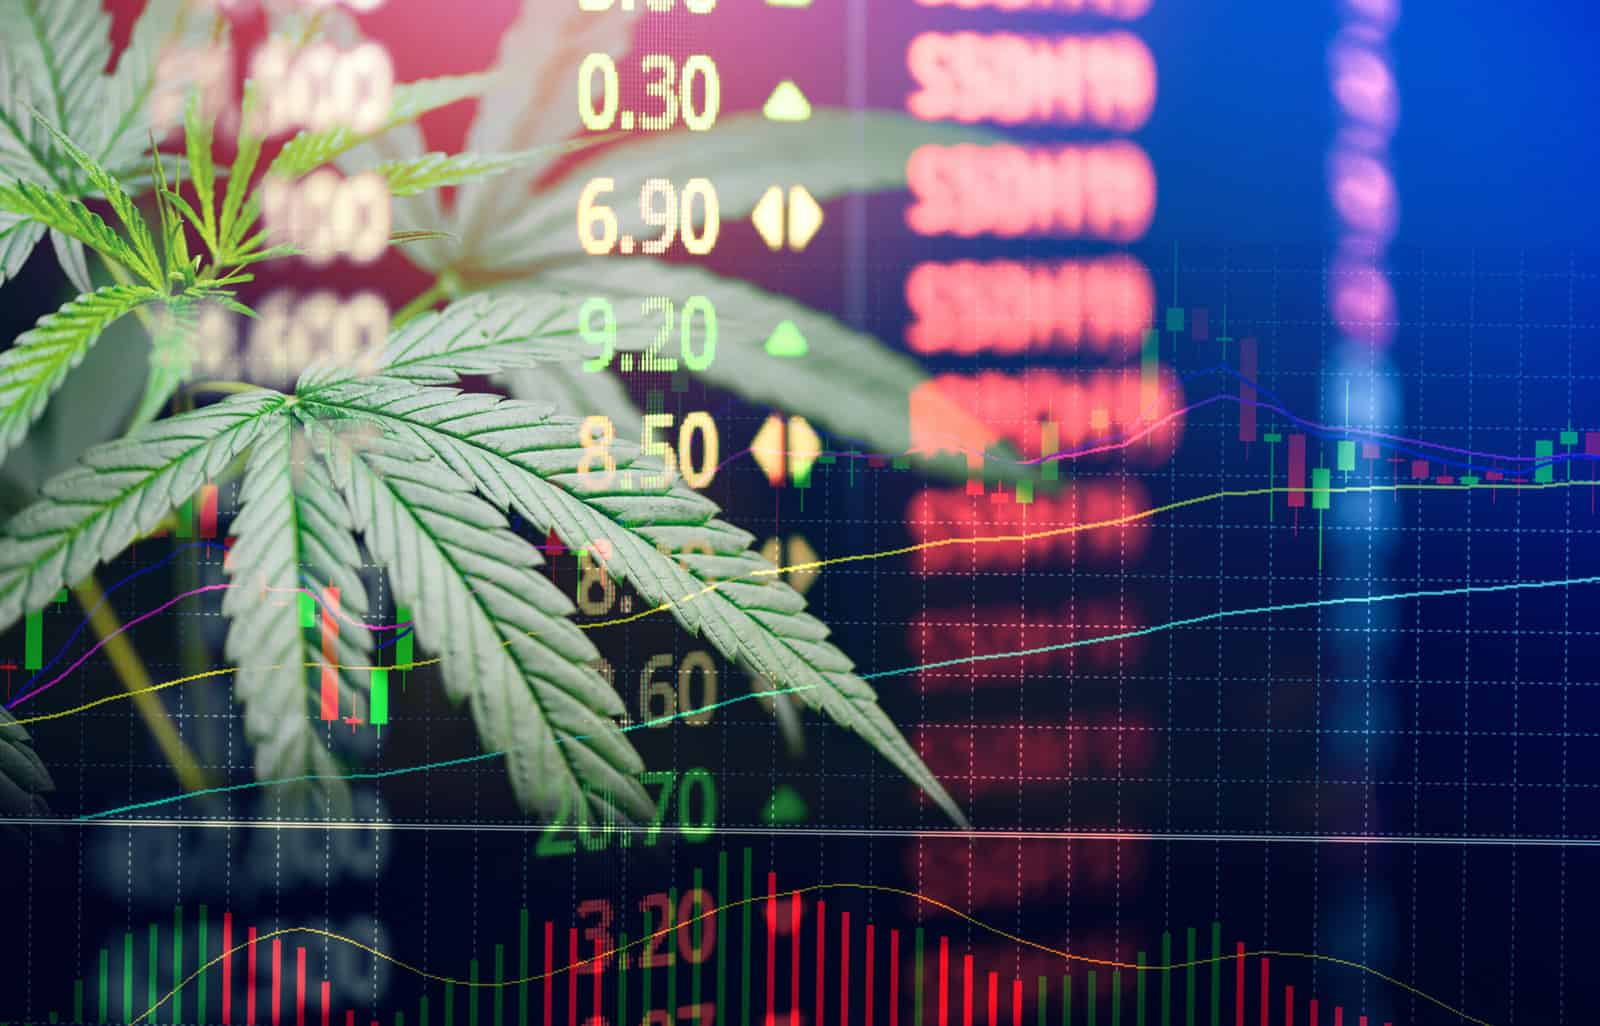 Canopy Growth Shares And Sales Are Up In Q3 2020.